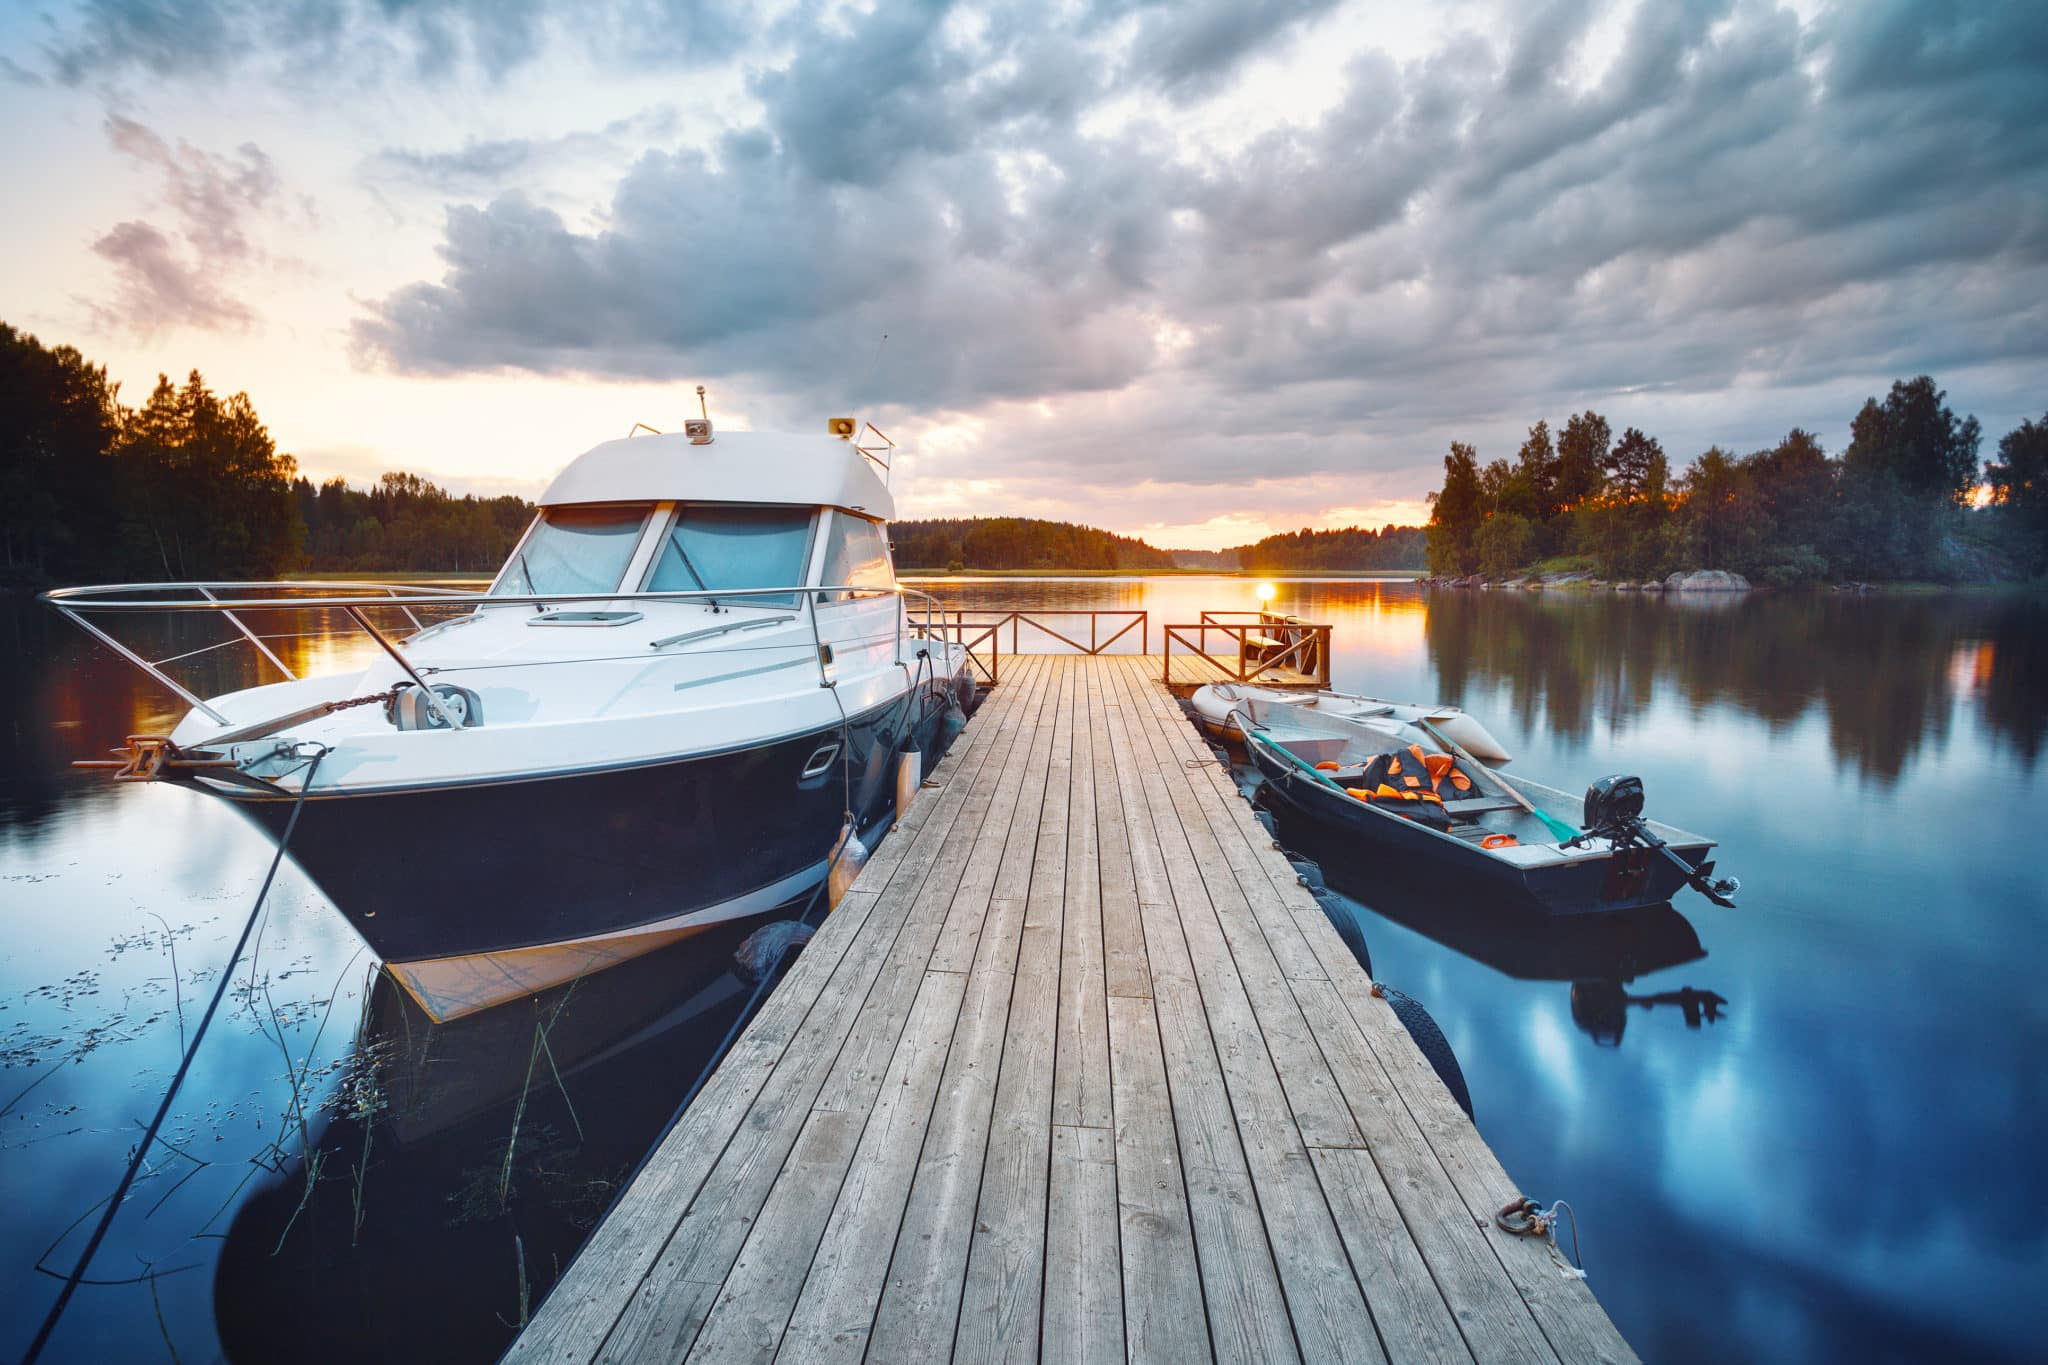 10 Must-Have Boat Safety Equipment for Your Boat